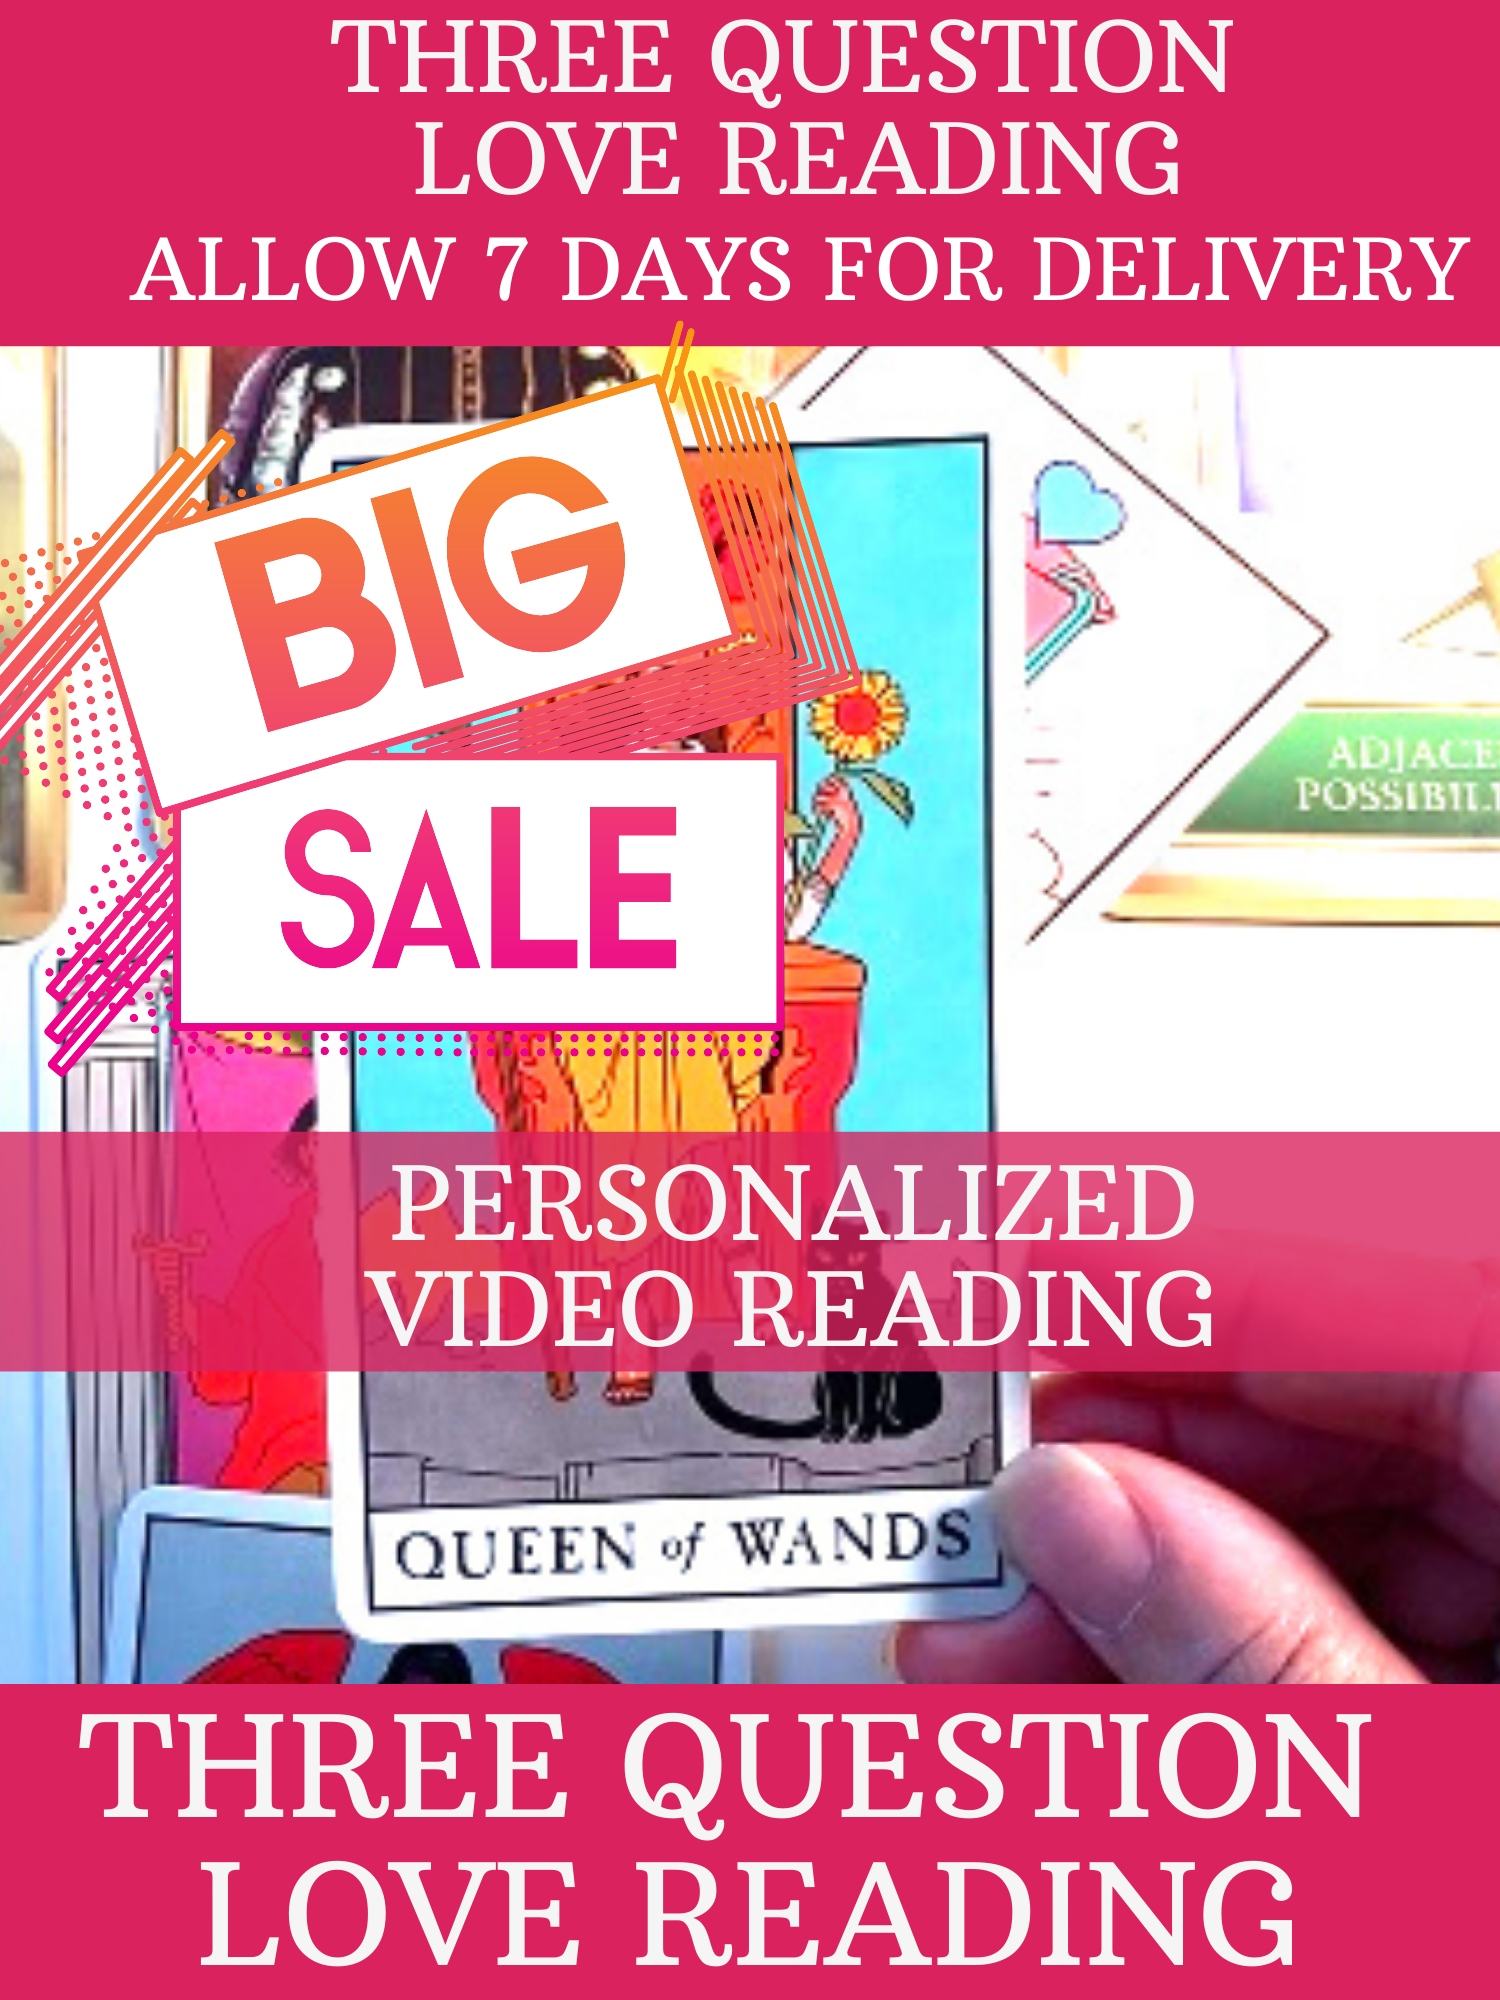 3 QUESTION VIDEO EXTENDED LOVE READING 10 CARD SPREAD (Please Allow Up To 7 Days For Delivery)